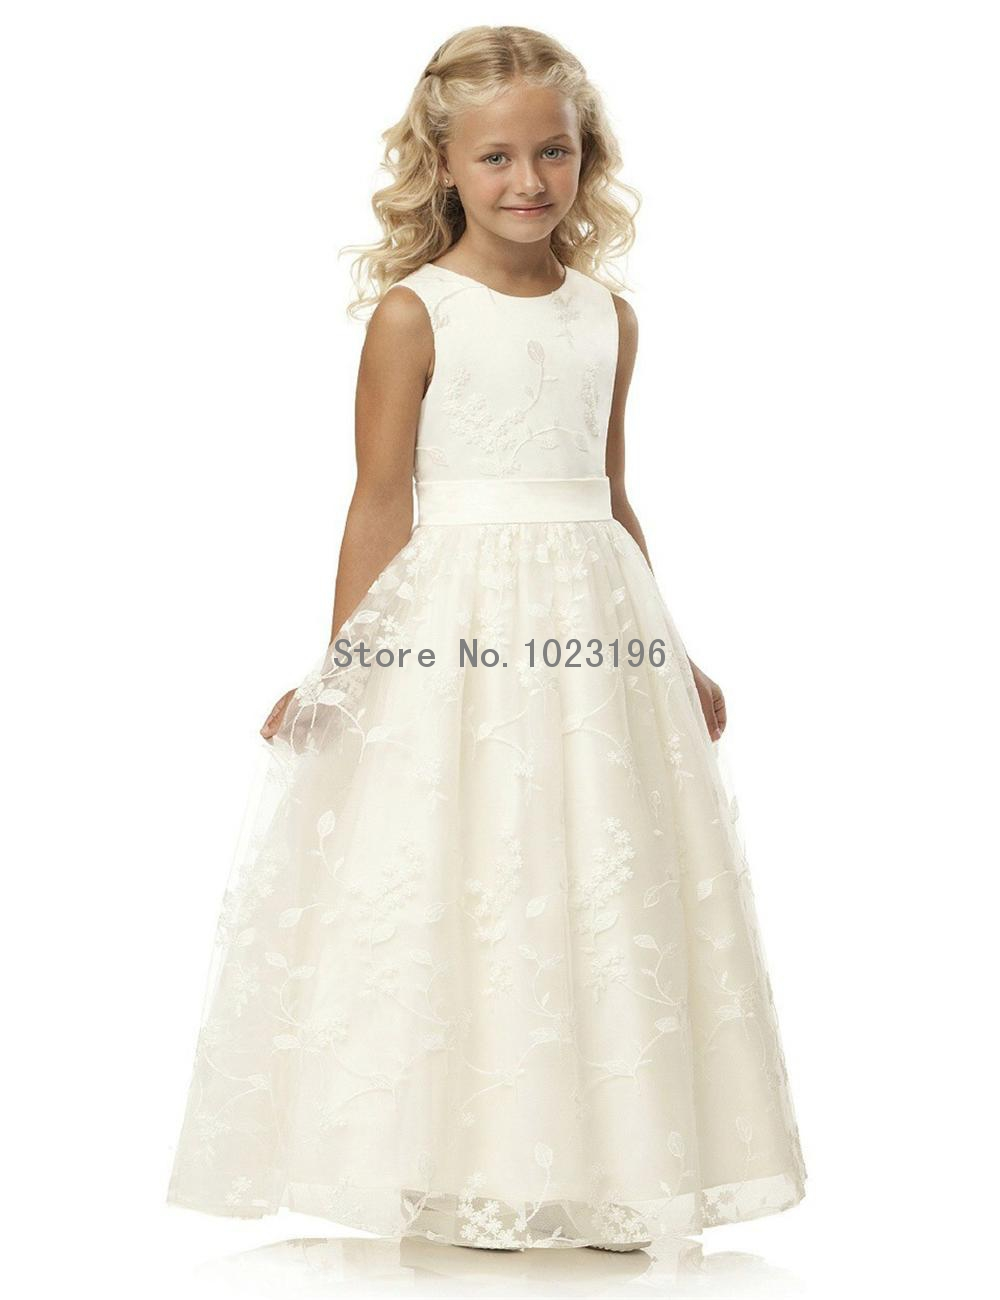 Junior dresses for weddings page 33 romper product princess lace sleeveless scoop floor length junior bridesmaid dress baptism dress christening dress with sash for wedding store ombrellifo Choice Image